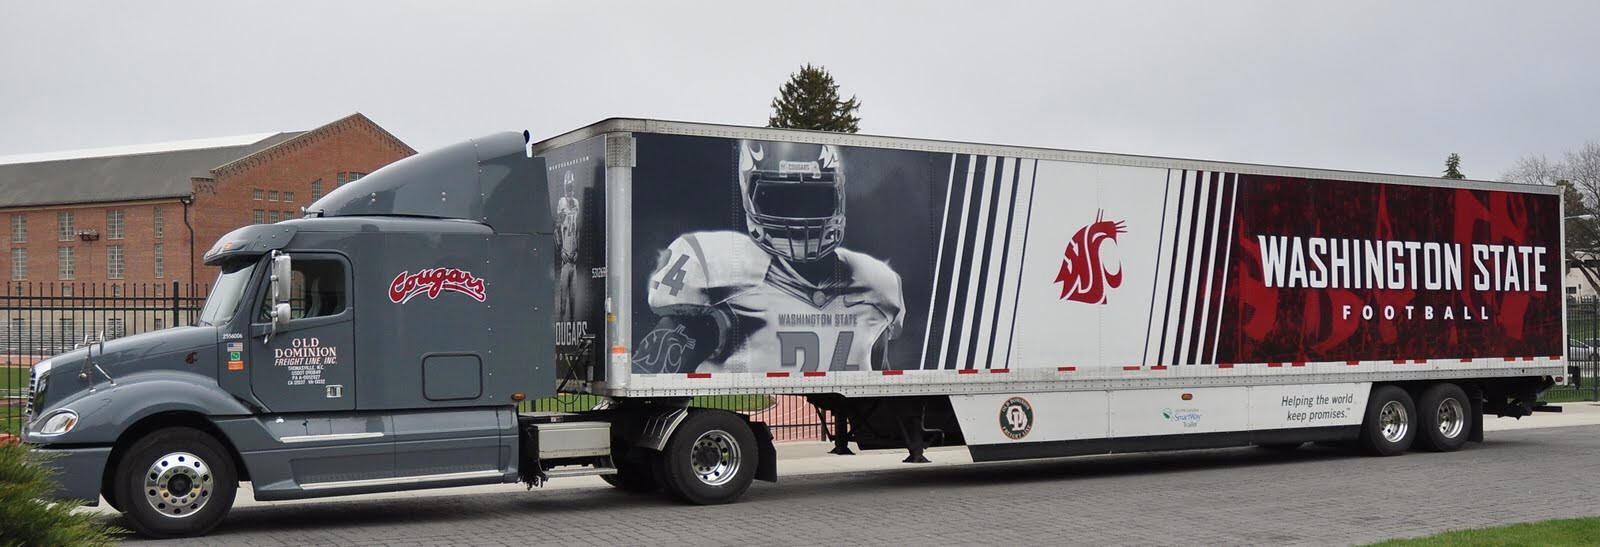 Http videosbytimmarsh blogspot com 2011 04 wsu football equipment truck part of html